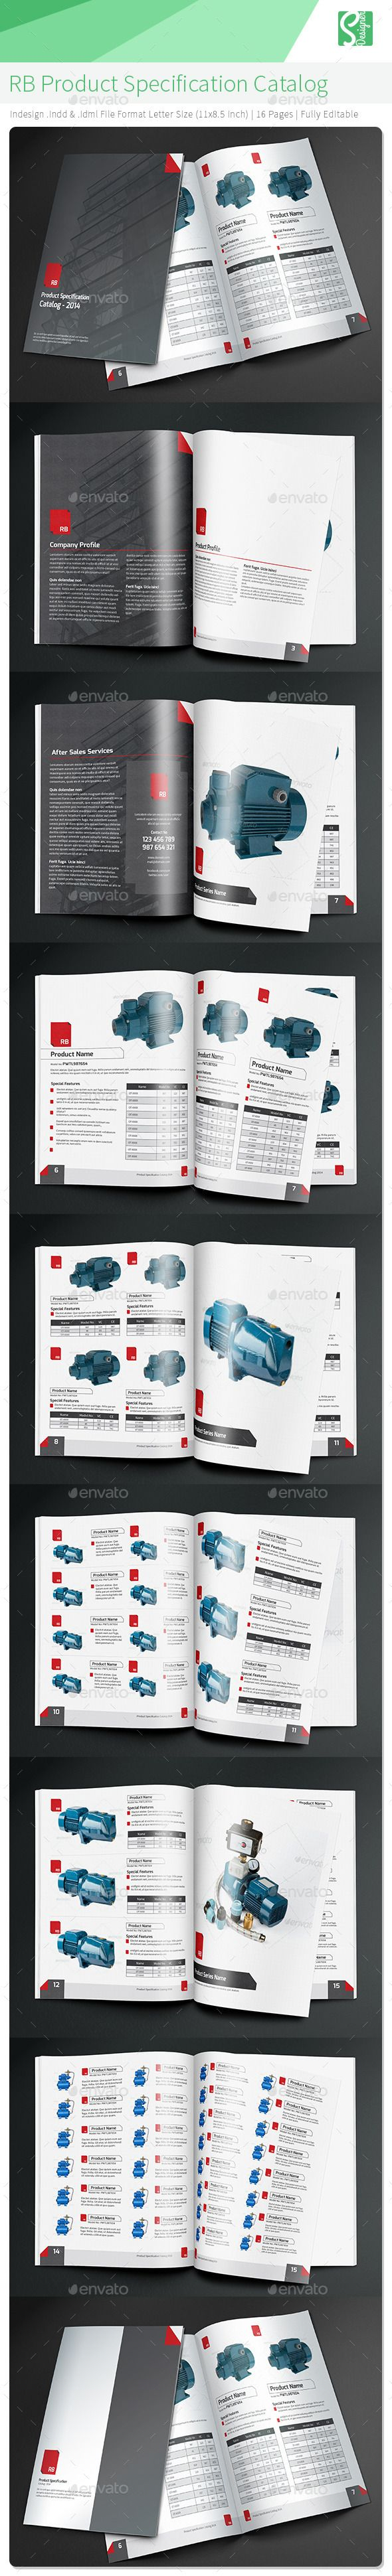 RB Product Specification Catalog